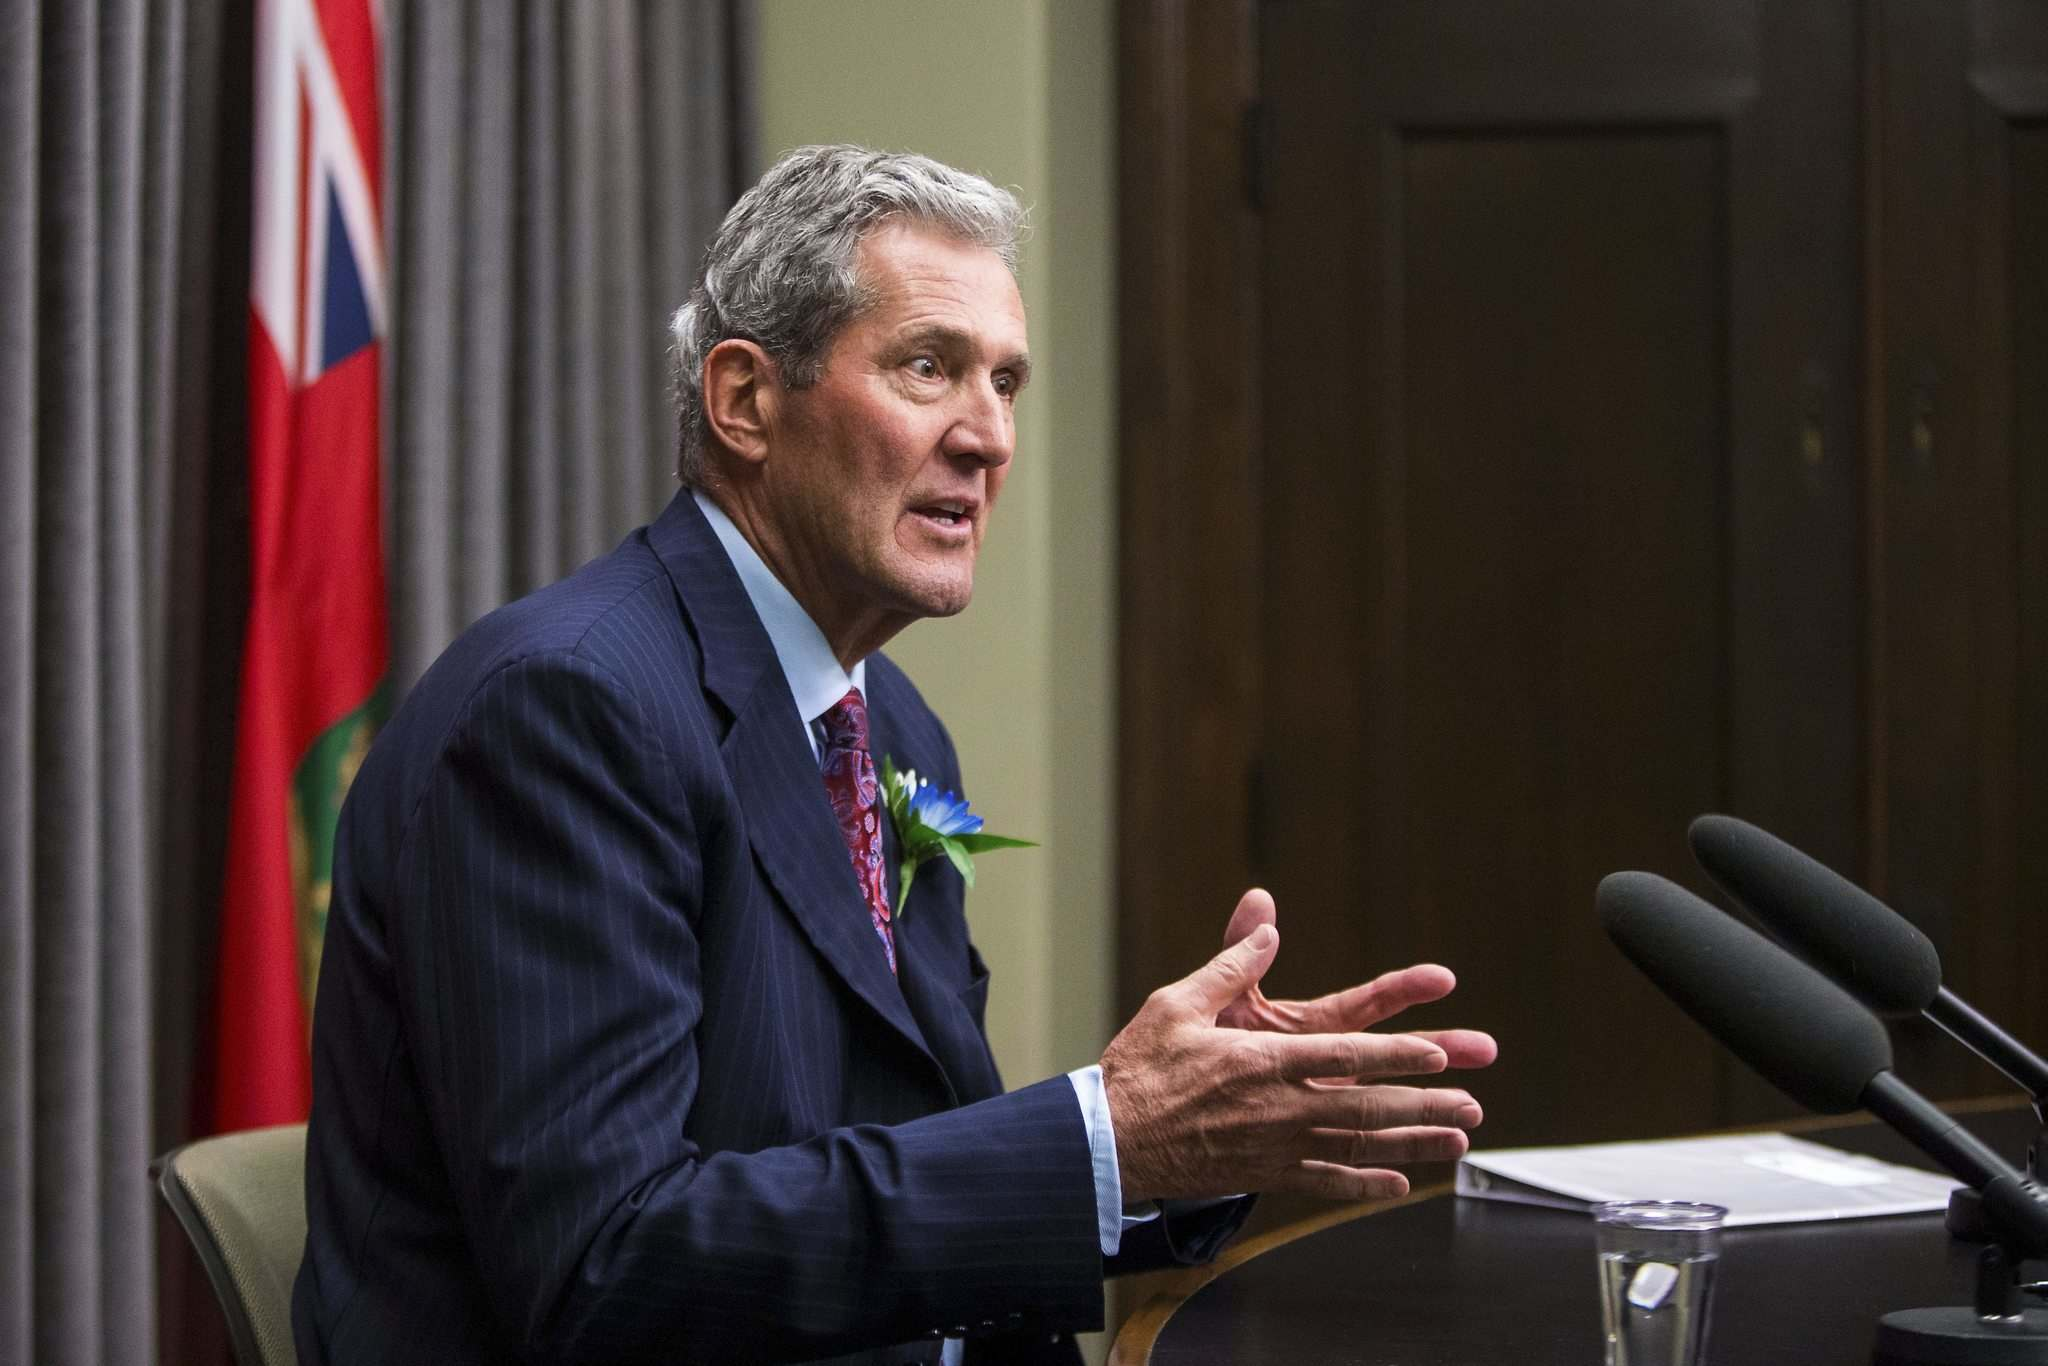 MIKAELA MACKENZIE / WINNIPEG FREE PRESS</p><p>Premier Brian Pallister speaks with the media after the speech from the throne at the Manitoba Legislative Building on Nov. 19.</p>